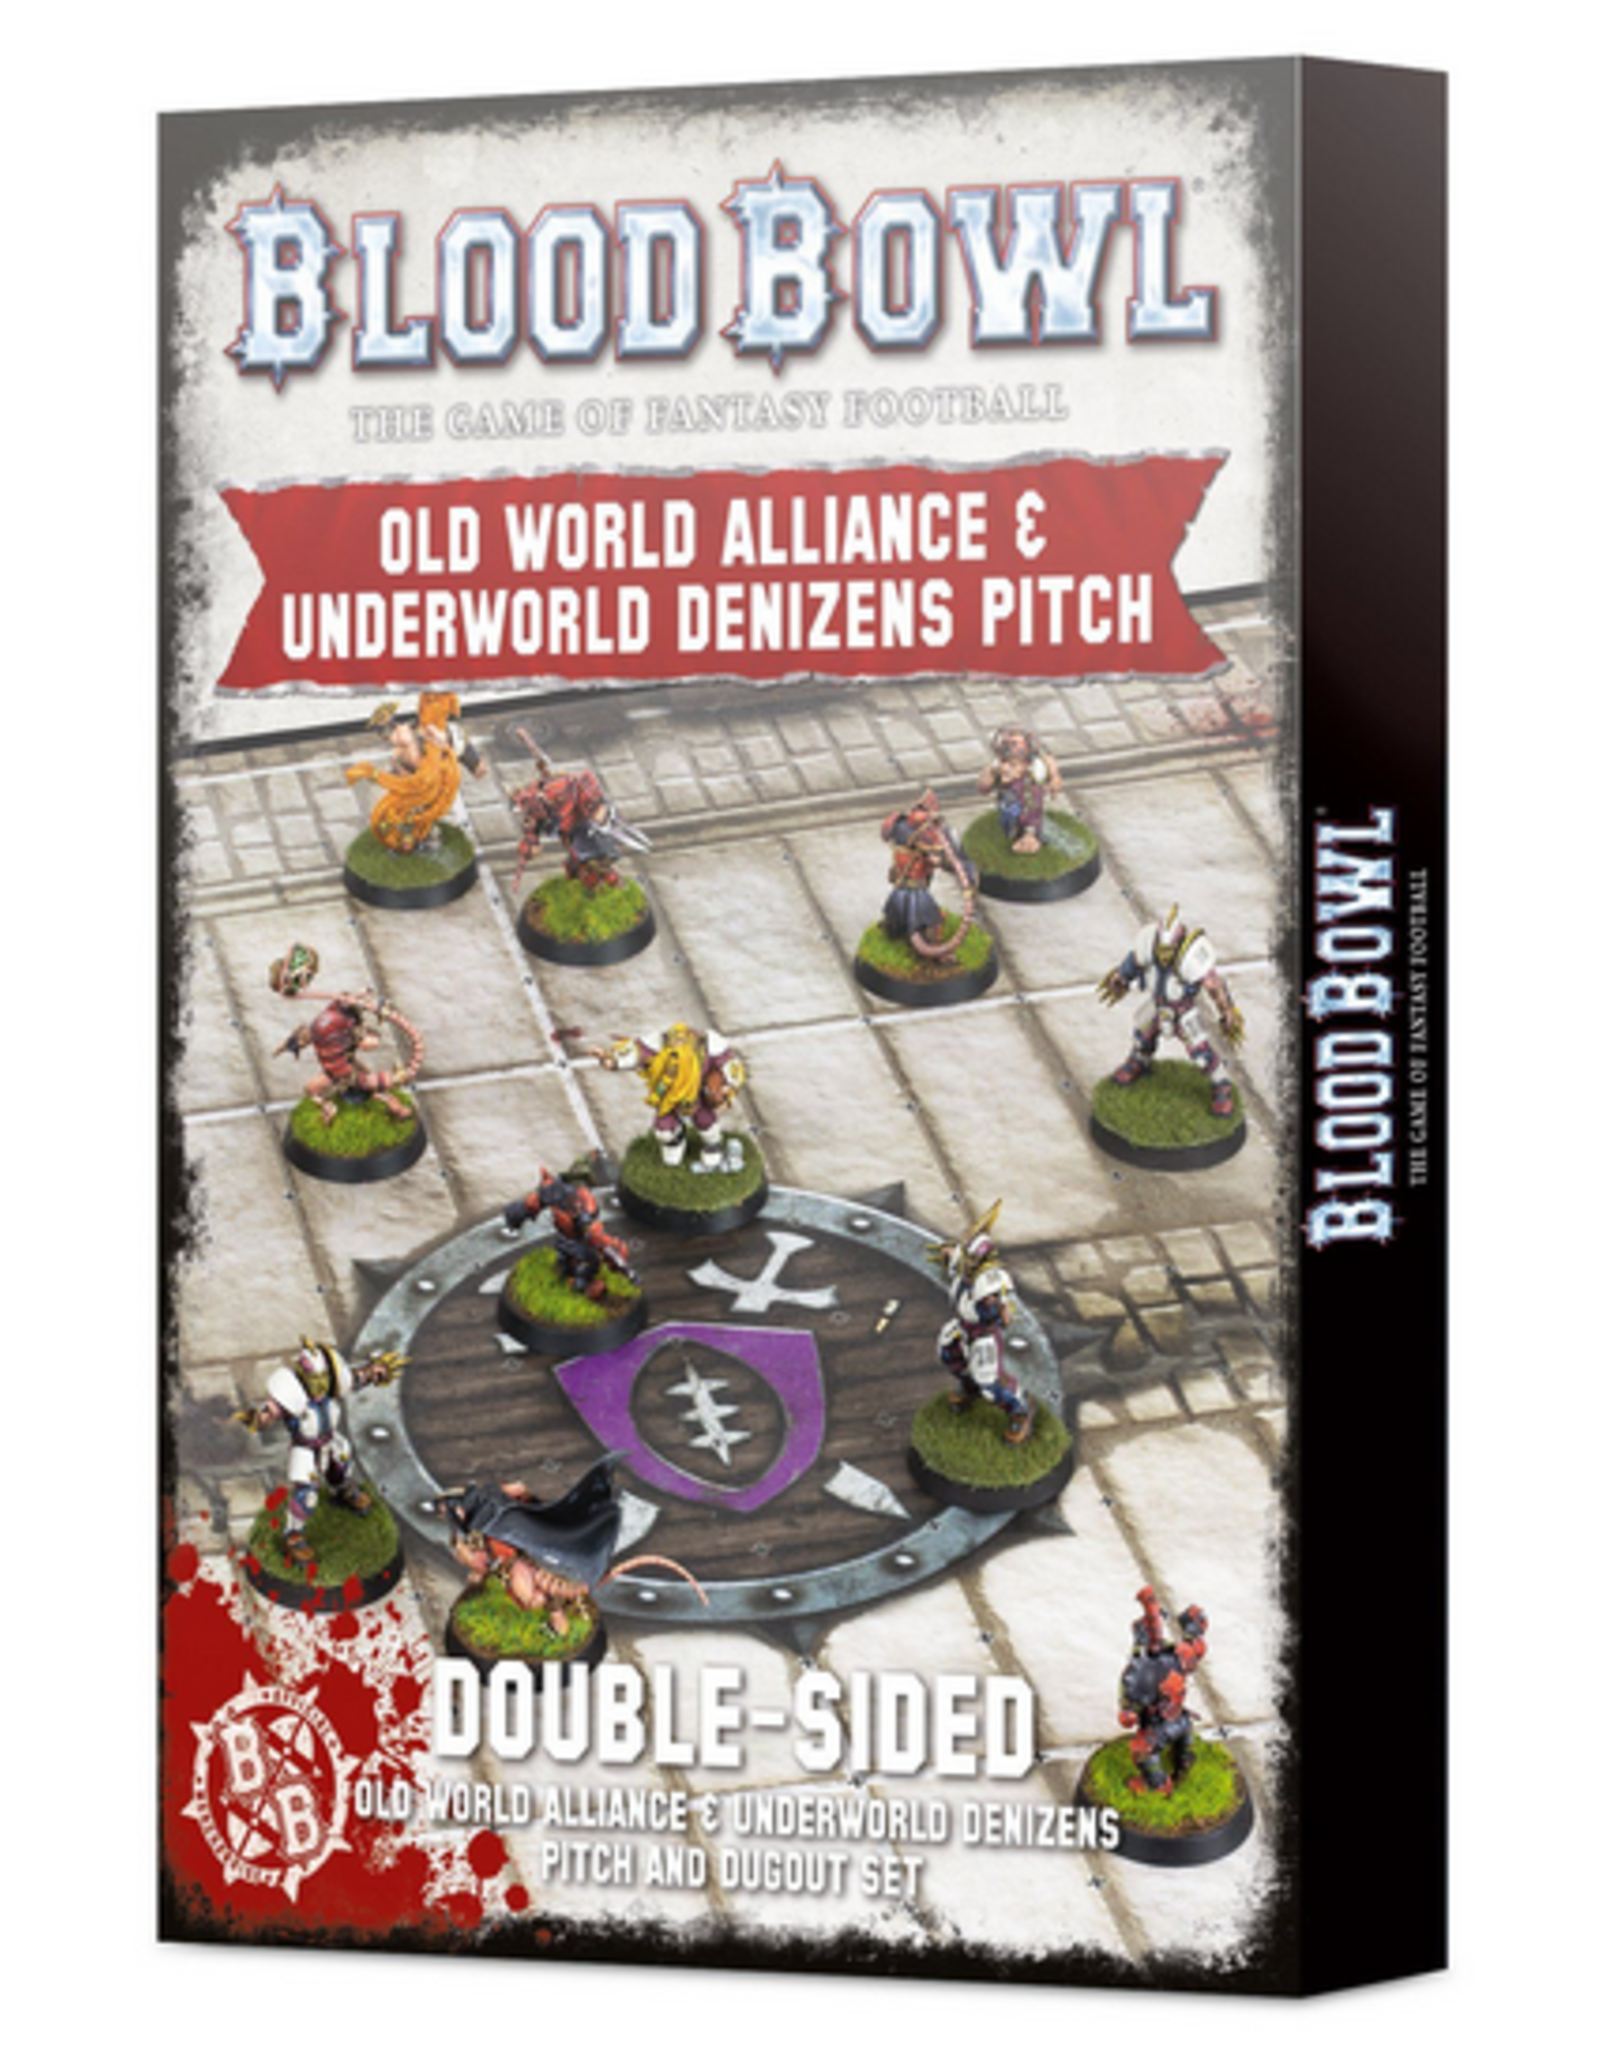 Warhammer Blood Bowl Team - Old World Alliance Pitch